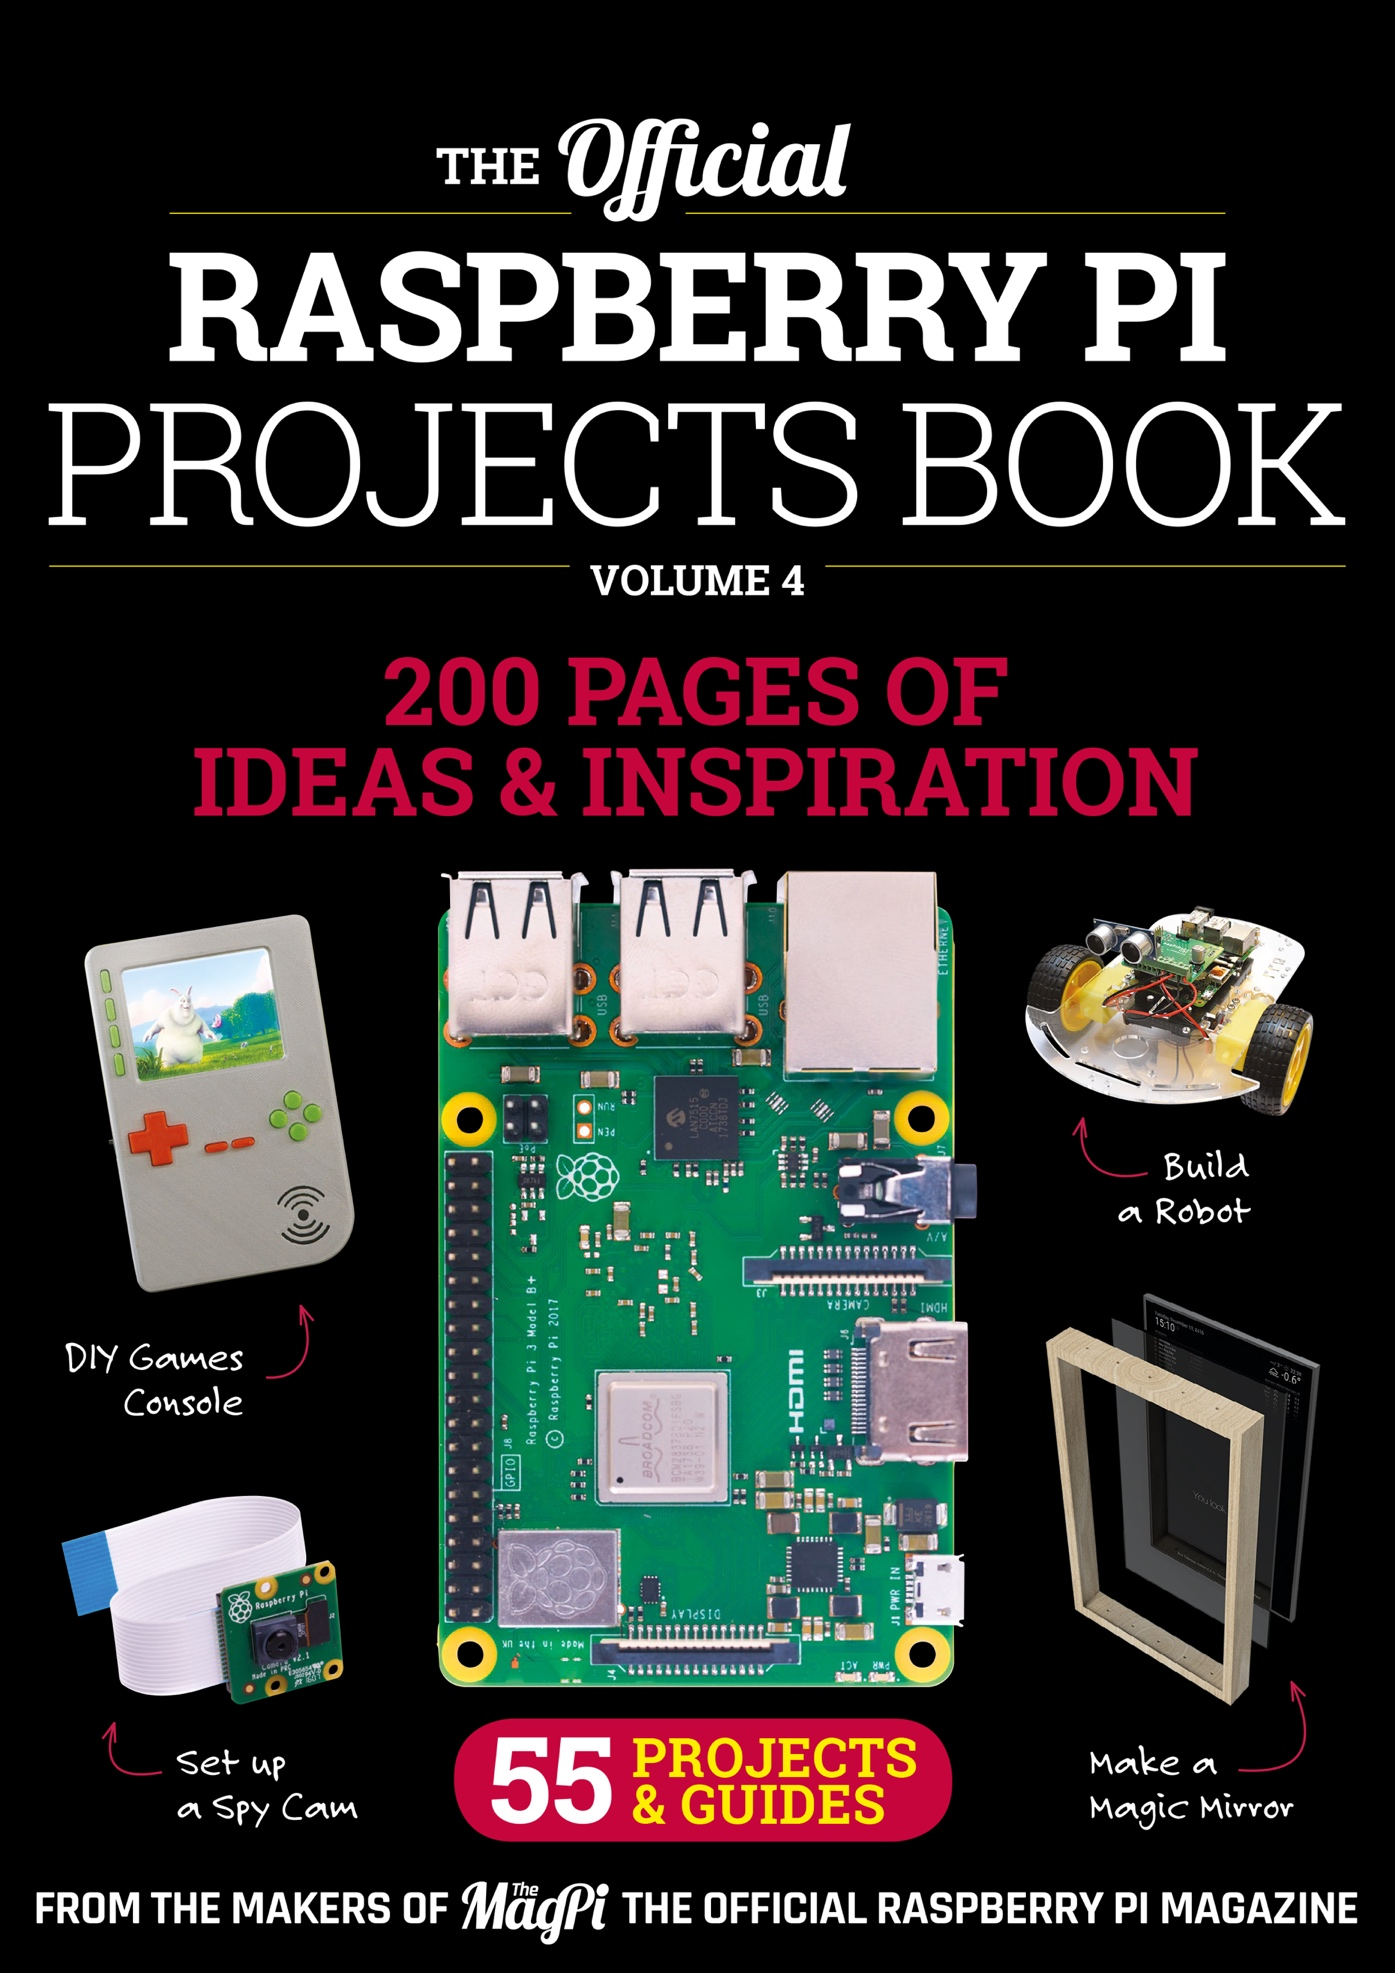 Projects Book 4 - The MagPi MagazineThe MagPi Magazine